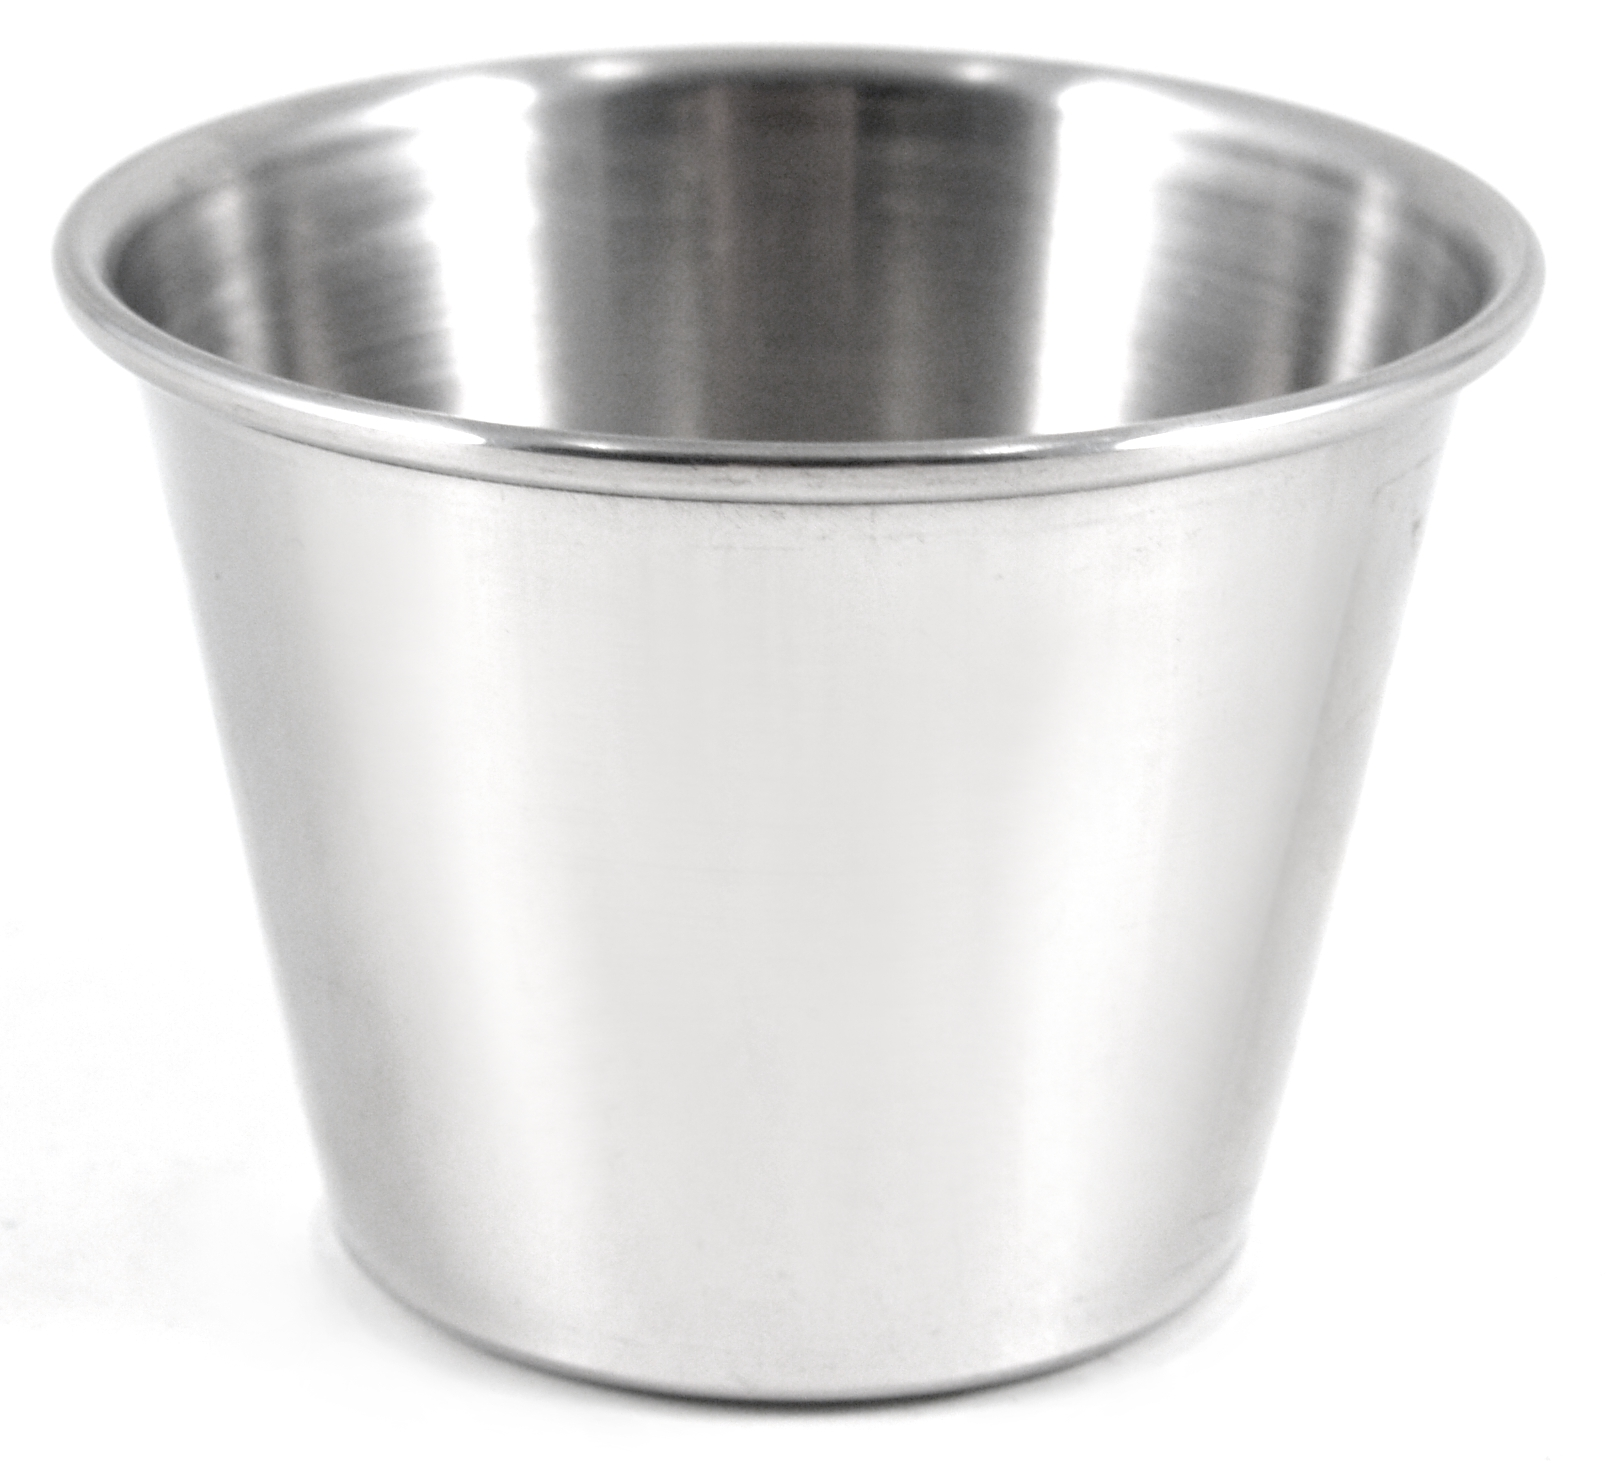 Stainless Steel Sauce and Condiment Cups, Set of 12